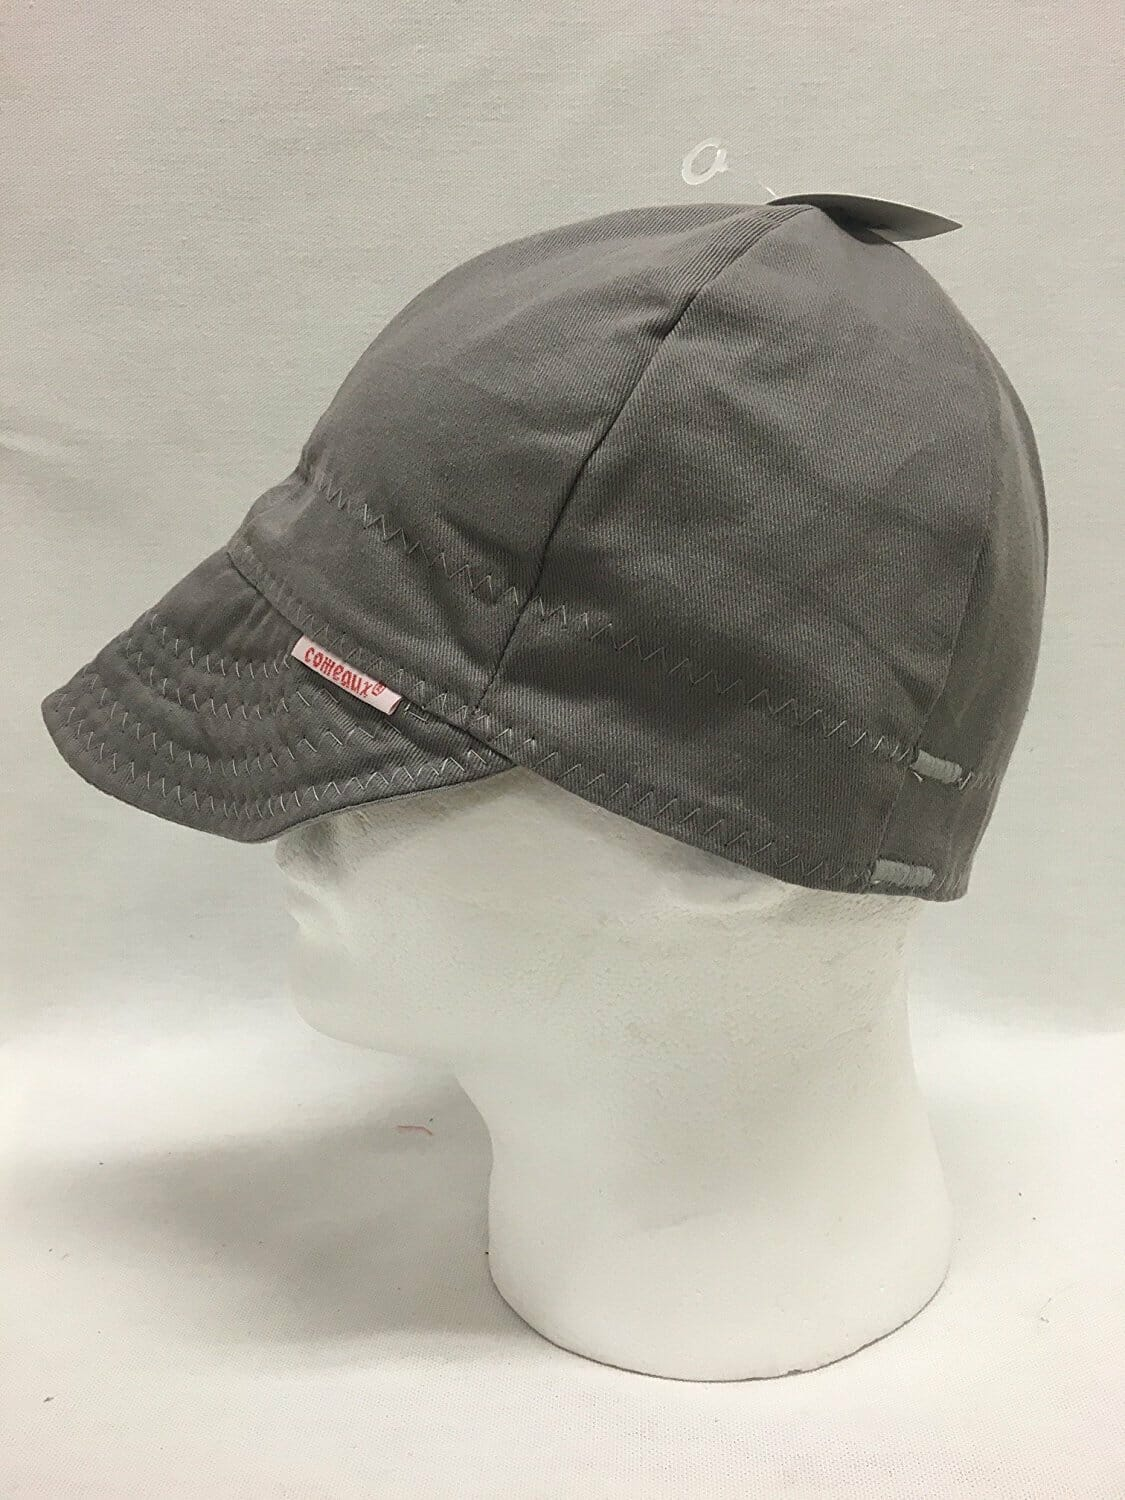 Comeaux Caps Reversible Welding Cap Solid grey